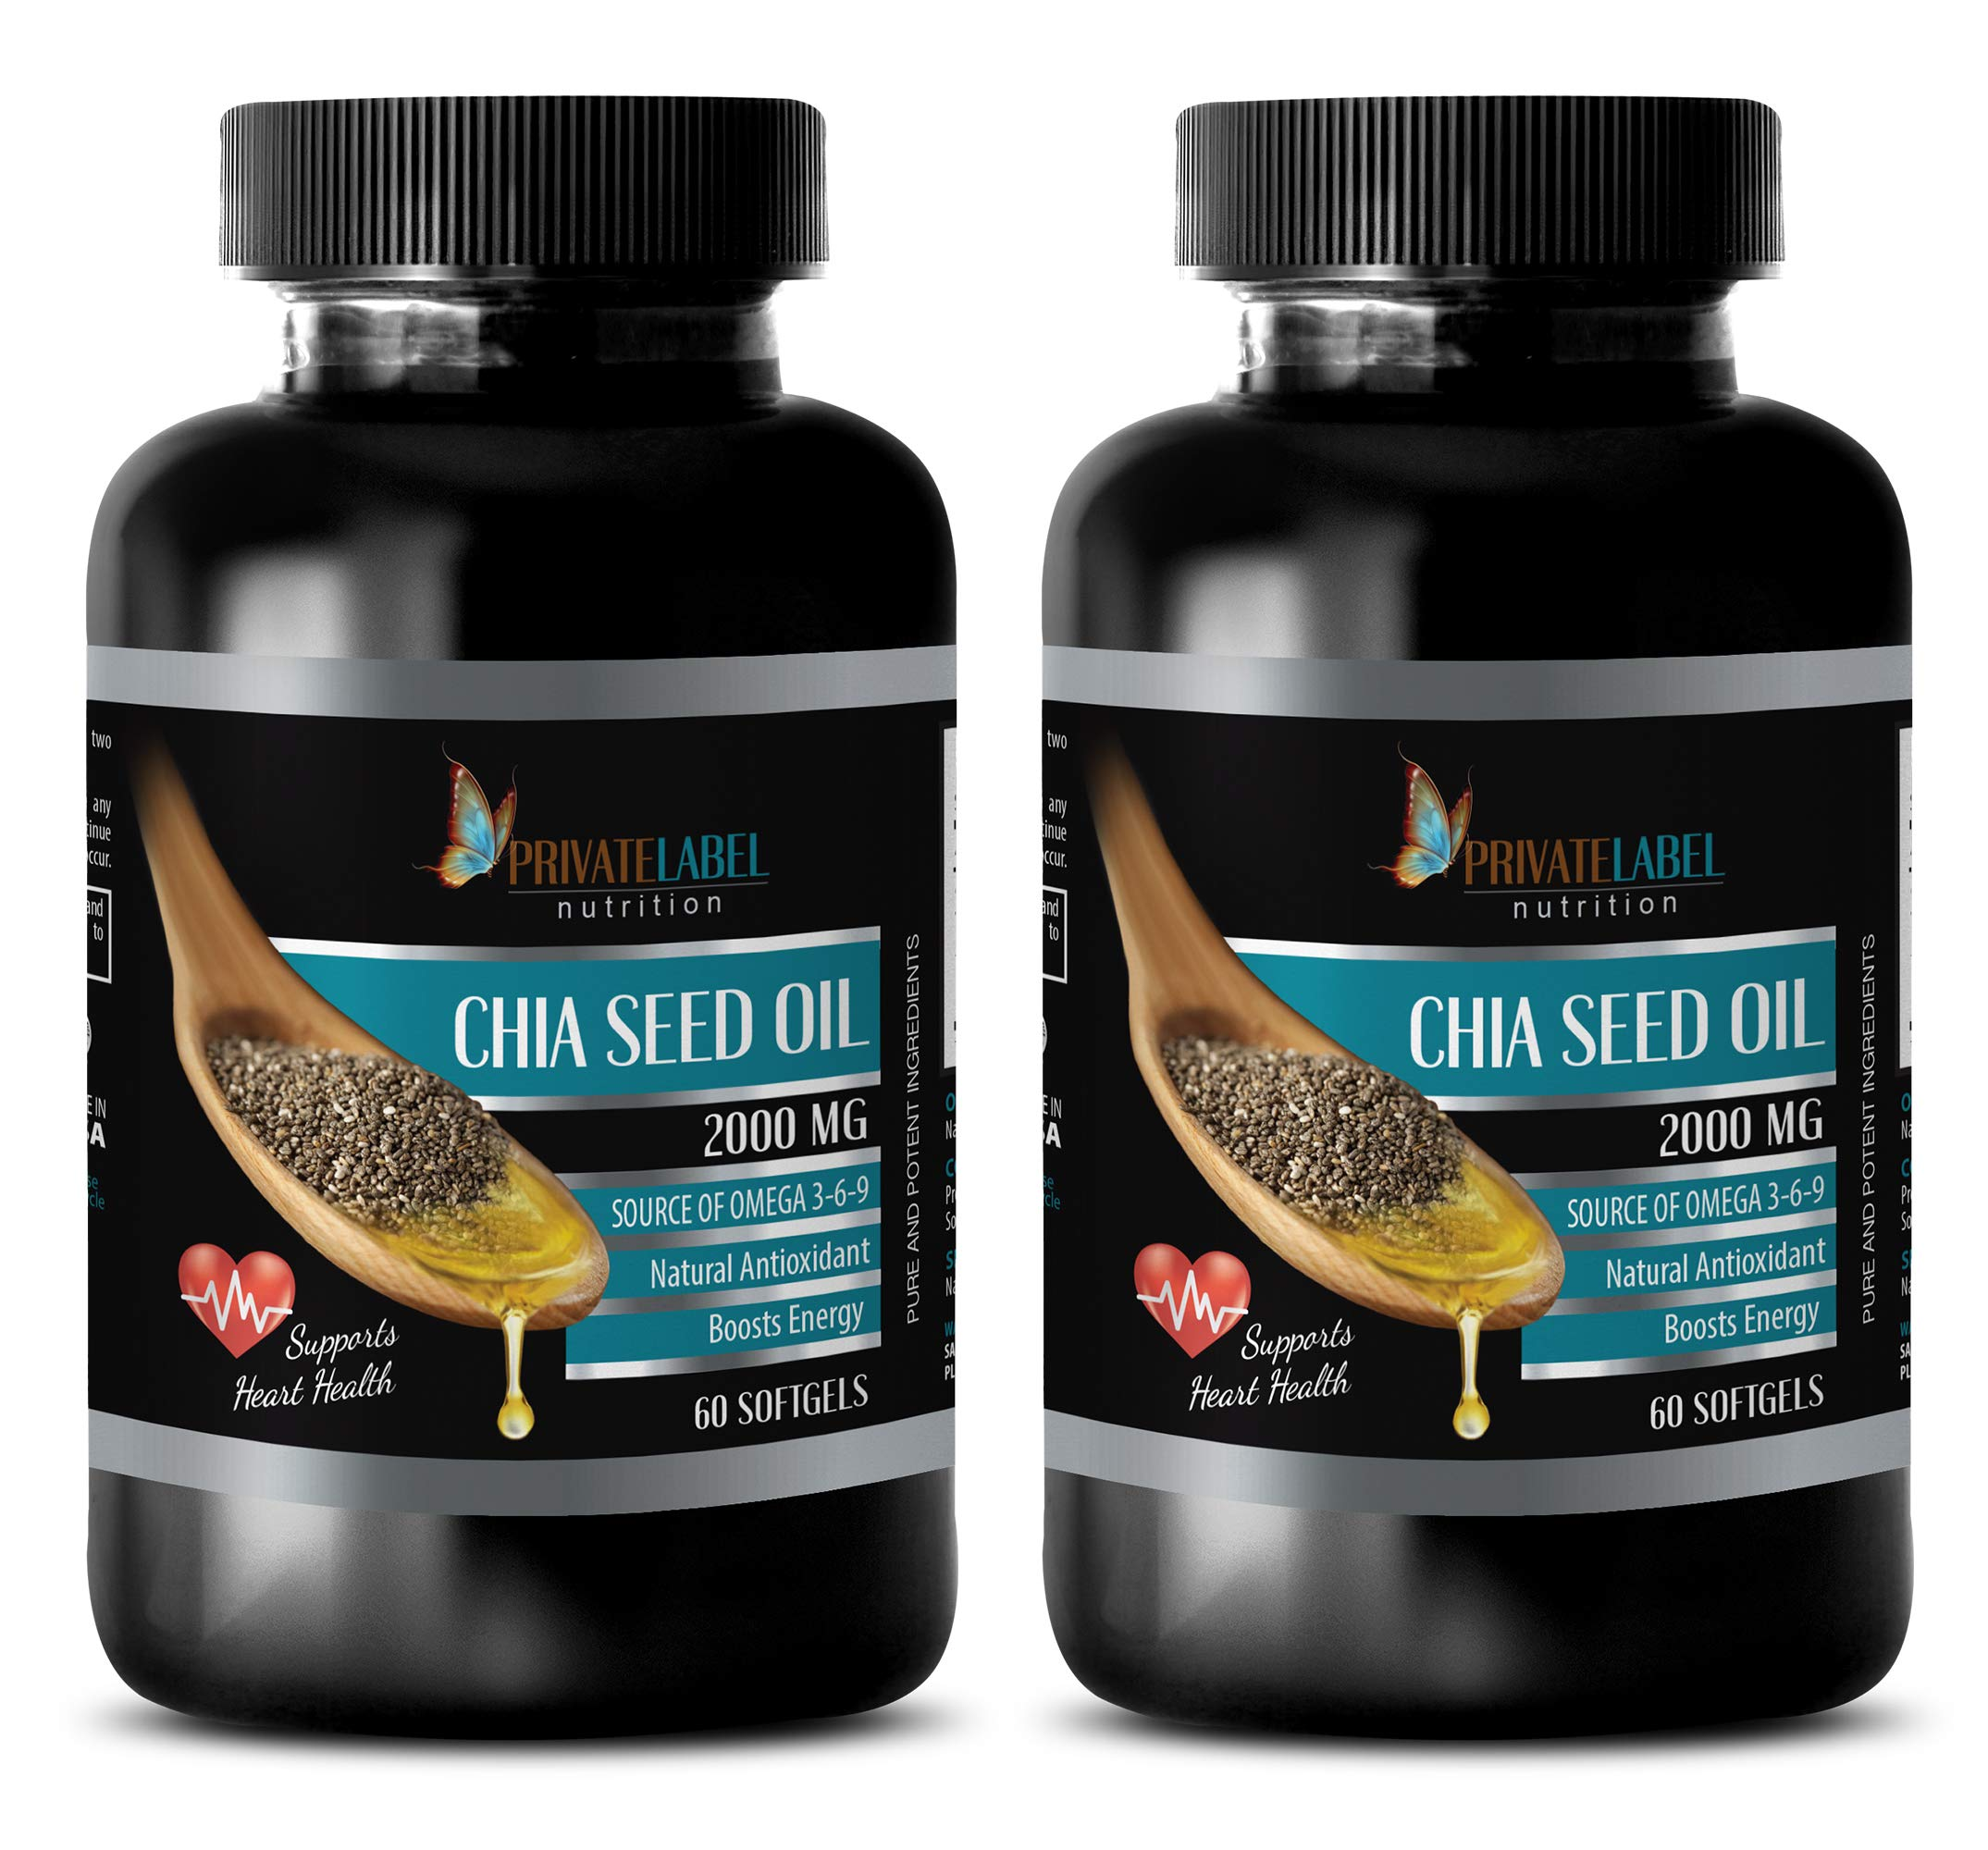 Memory Support Pills - CHIA Seed Oil 2000MG - Source of Omega 3-6-9 - Supports Heart Health - chia Seed Oil Pills - 2 Bottles (120 Softgels)